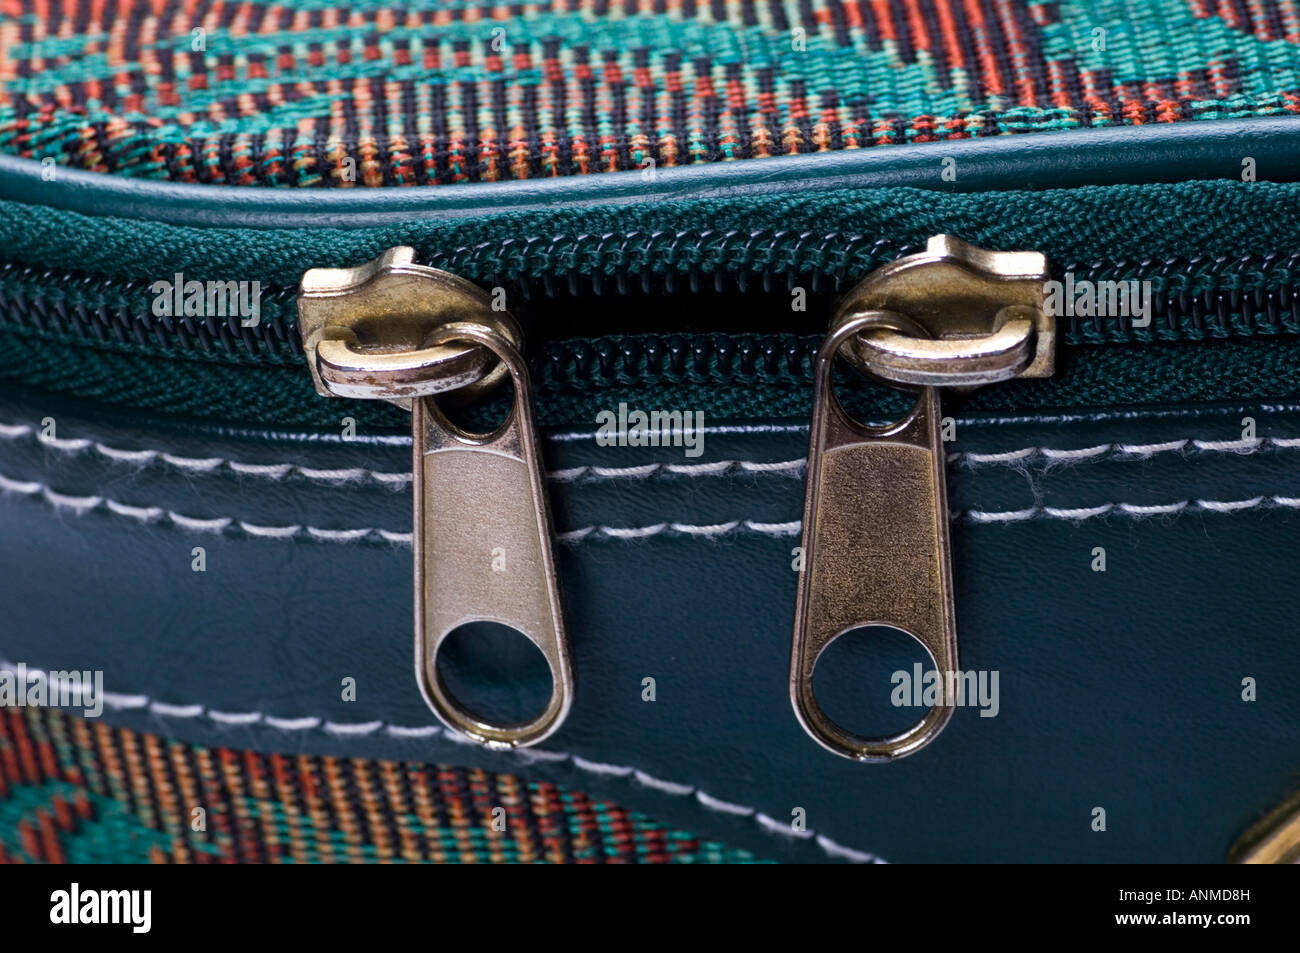 Zipper tabs of a traveling case - Stock Image